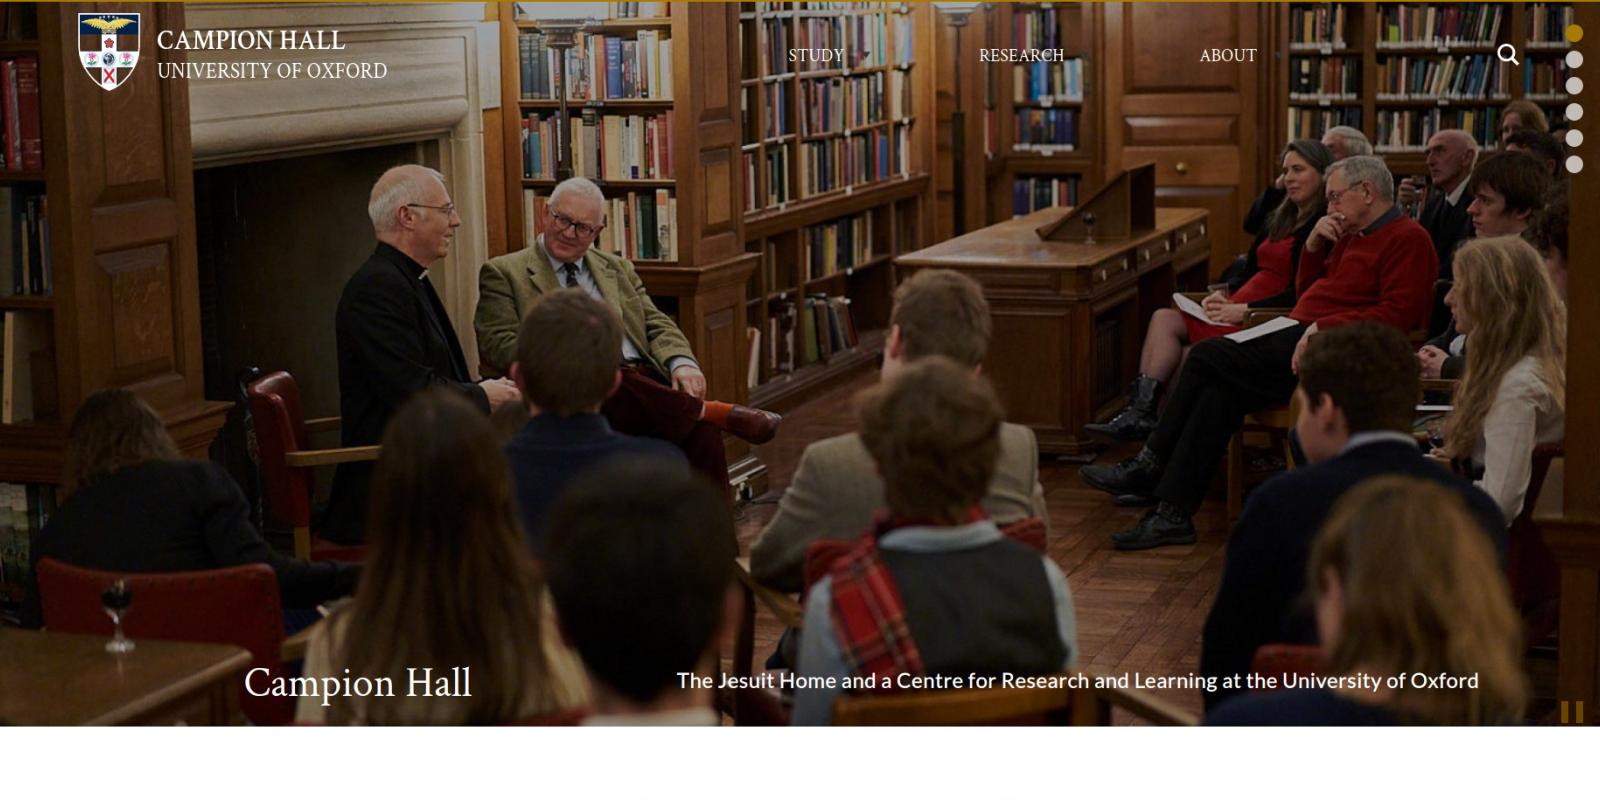 Campion Hall - University of Oxford - website homepage banner